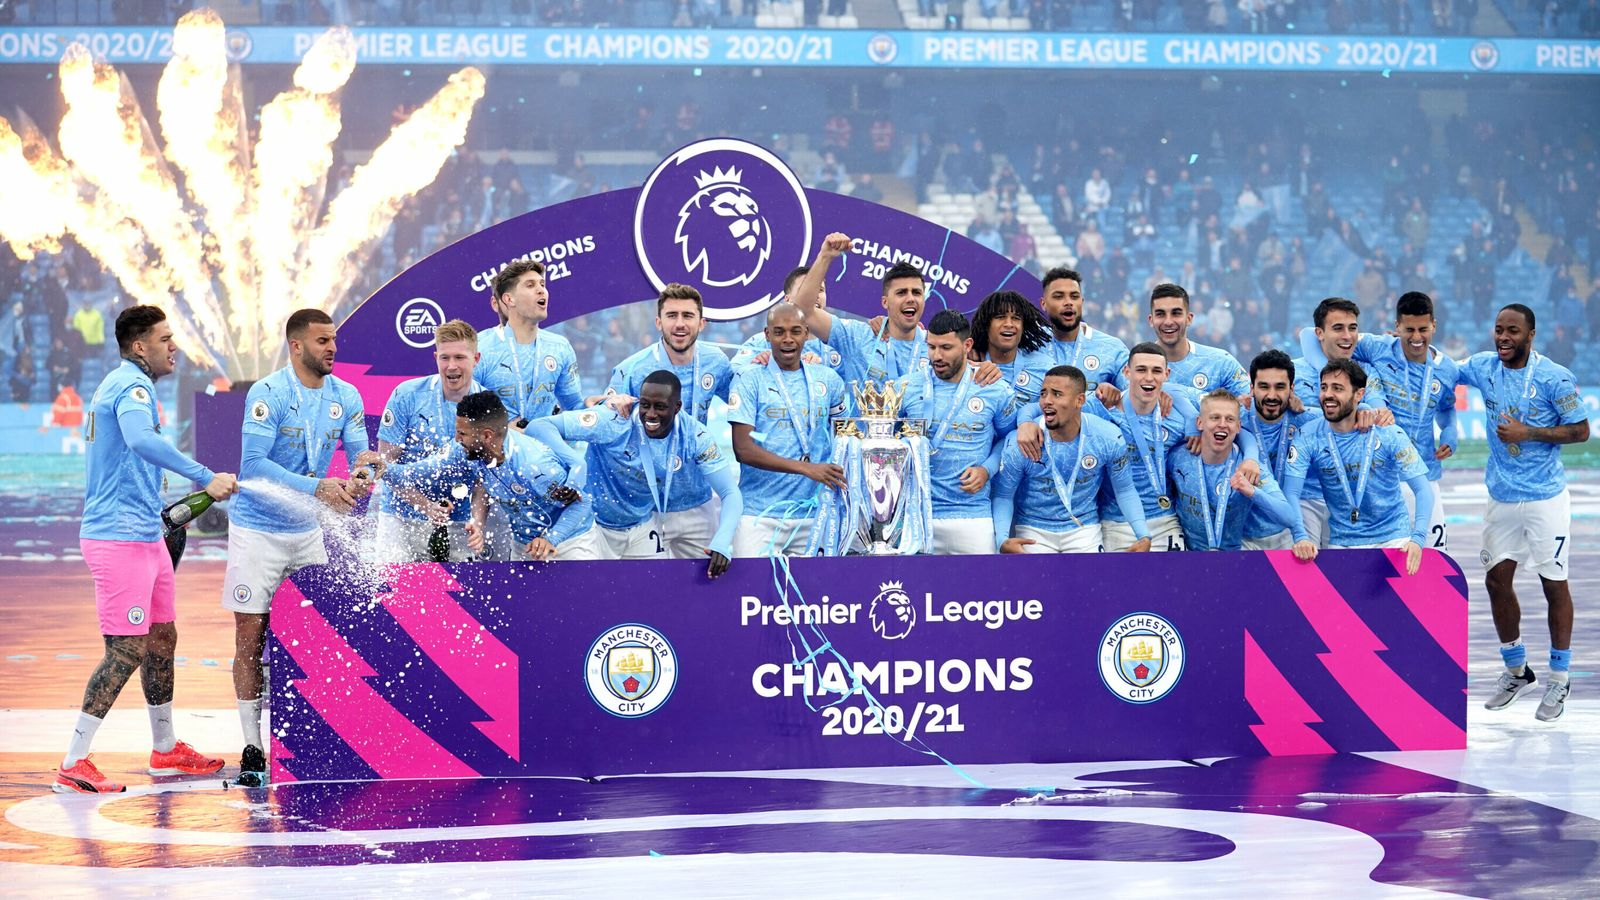 Premier League unveils Owners' Charter to head off future breakaway threat